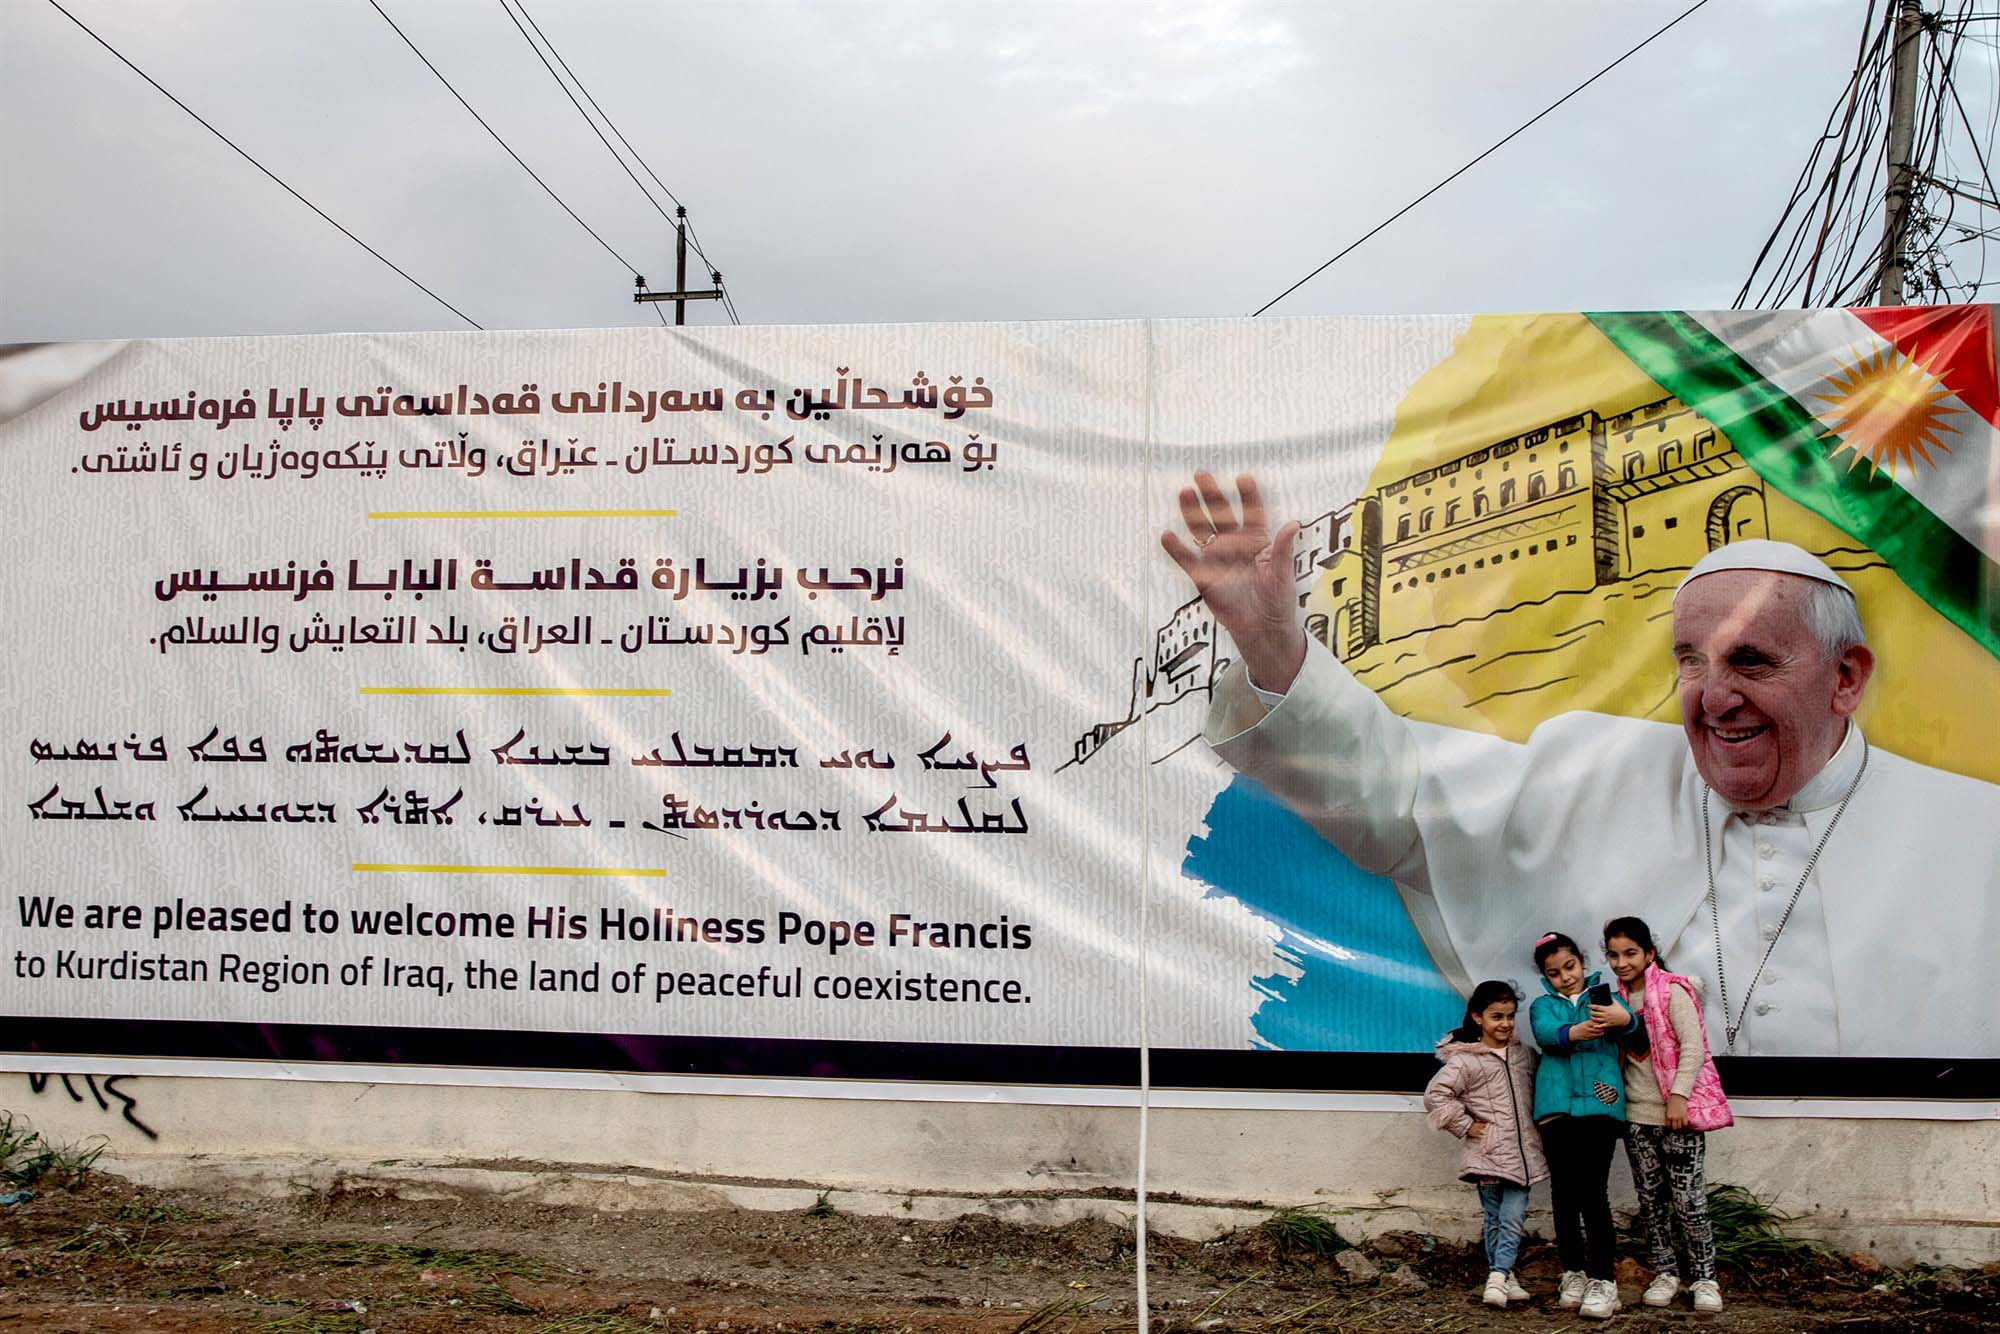 Pope Francis Is Visiting Iraq To Meet With Ayatollah Sistani. Here's Why It's A Historic Trip.